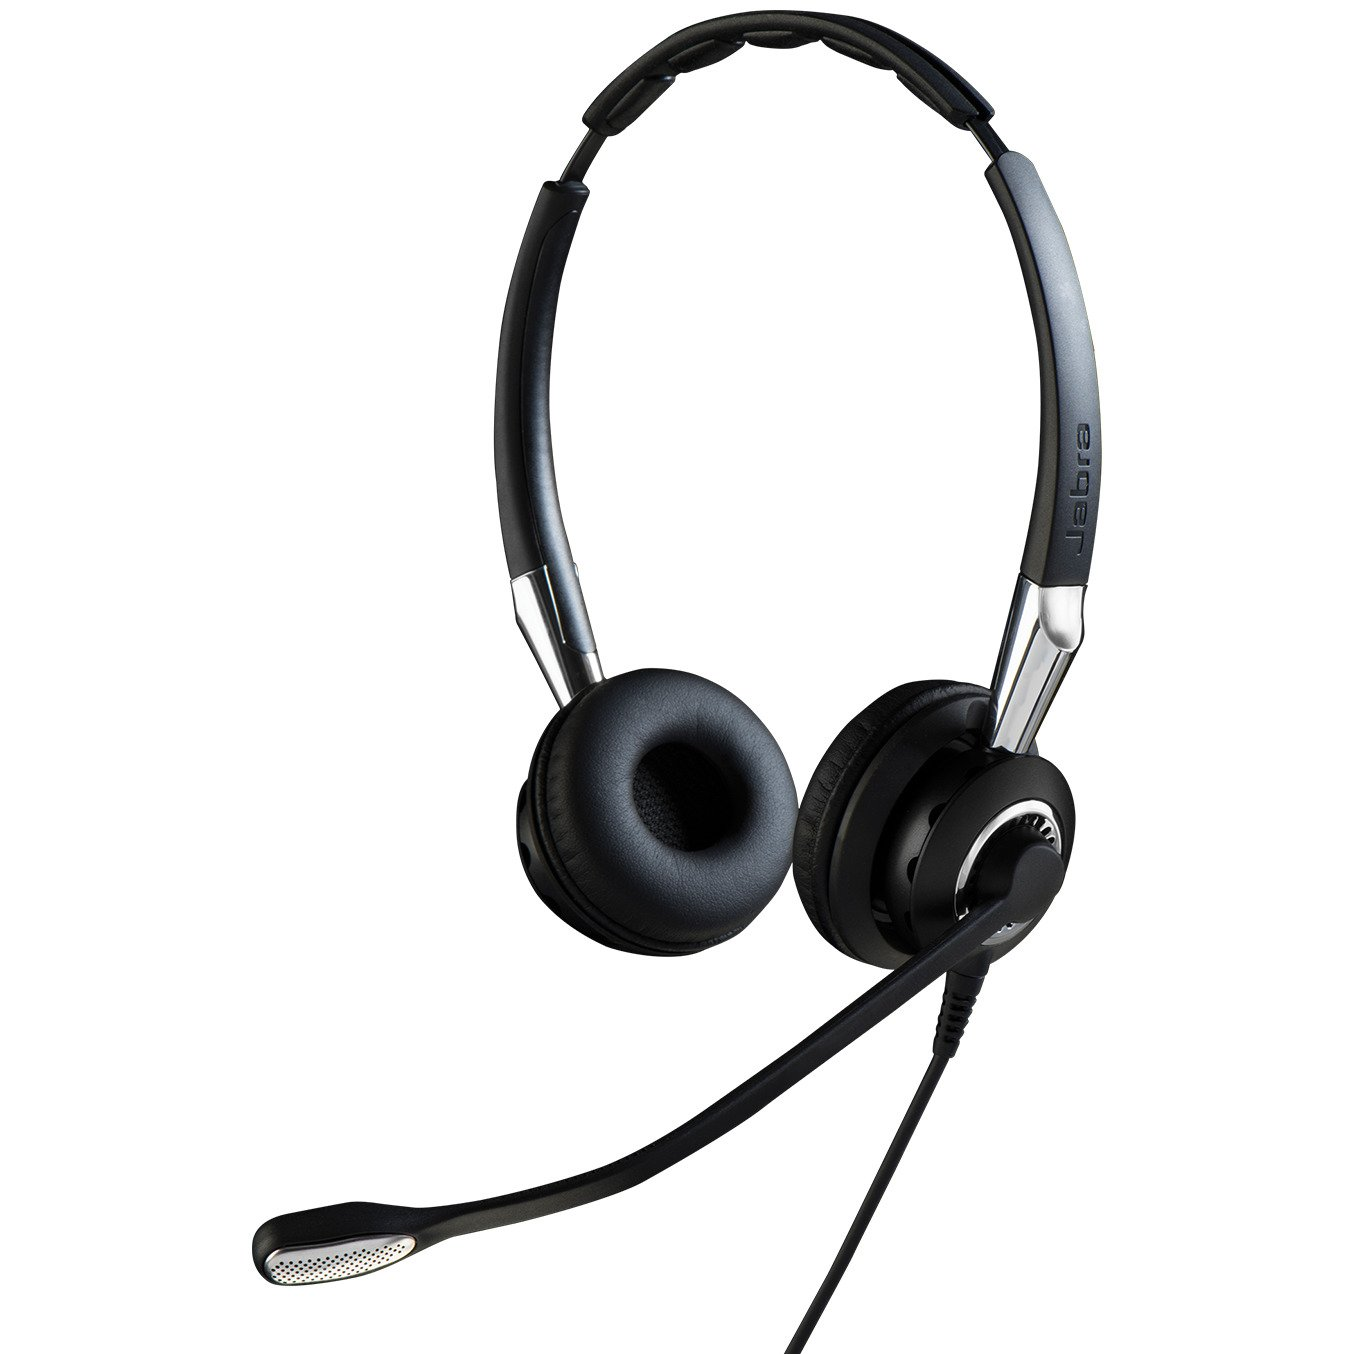 Jabra 2400 II QD Duo NC Wired Headset - Black